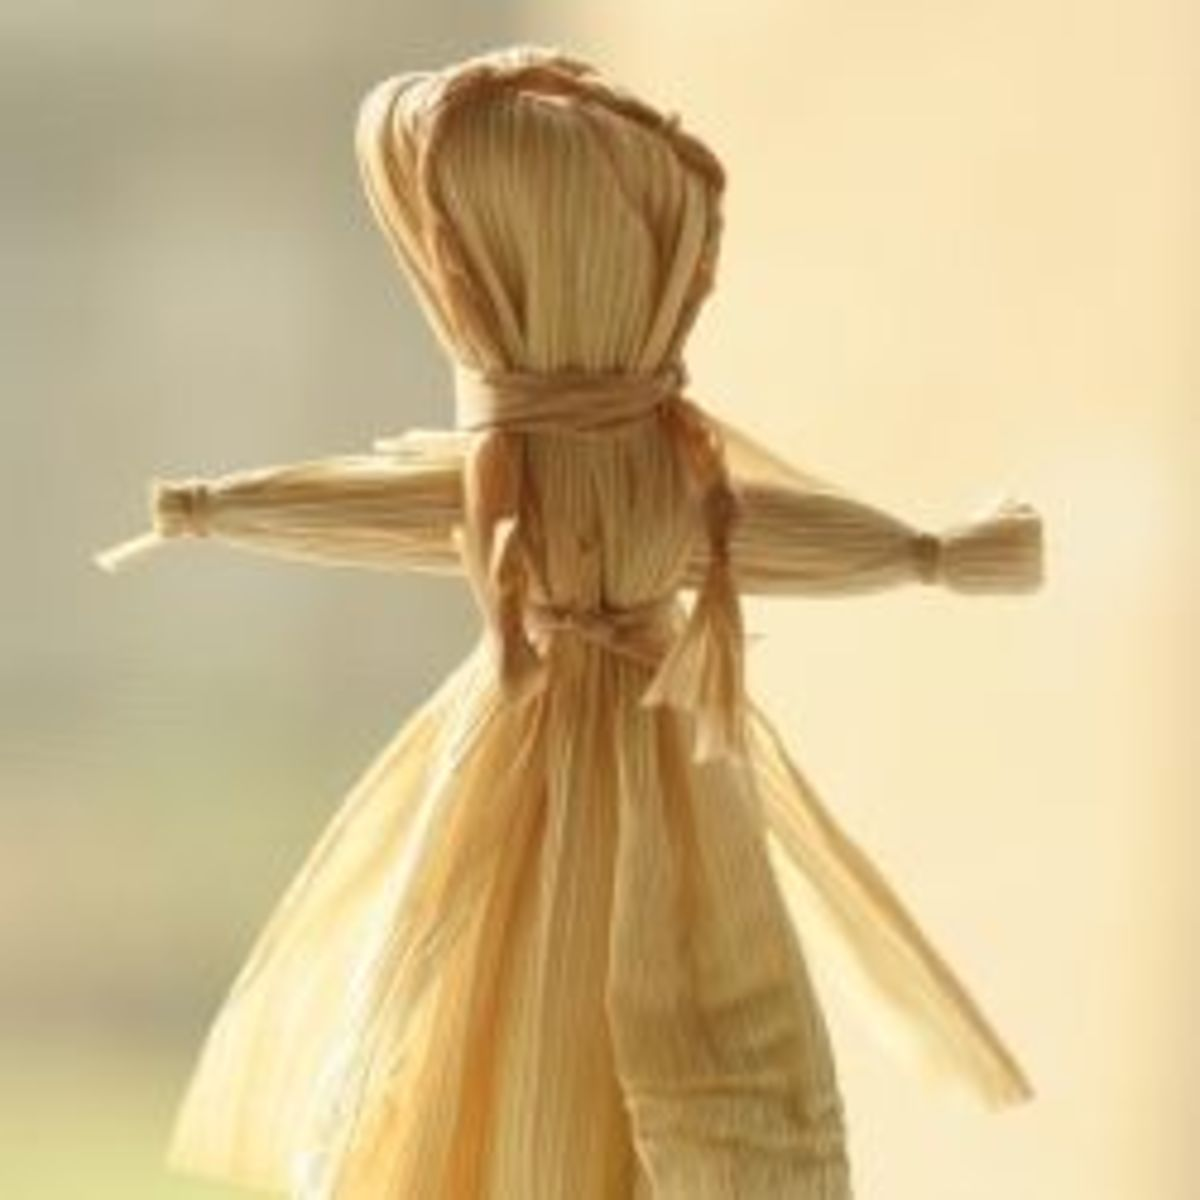 How to Make a Corn Husk Doll - An Old Time Craft